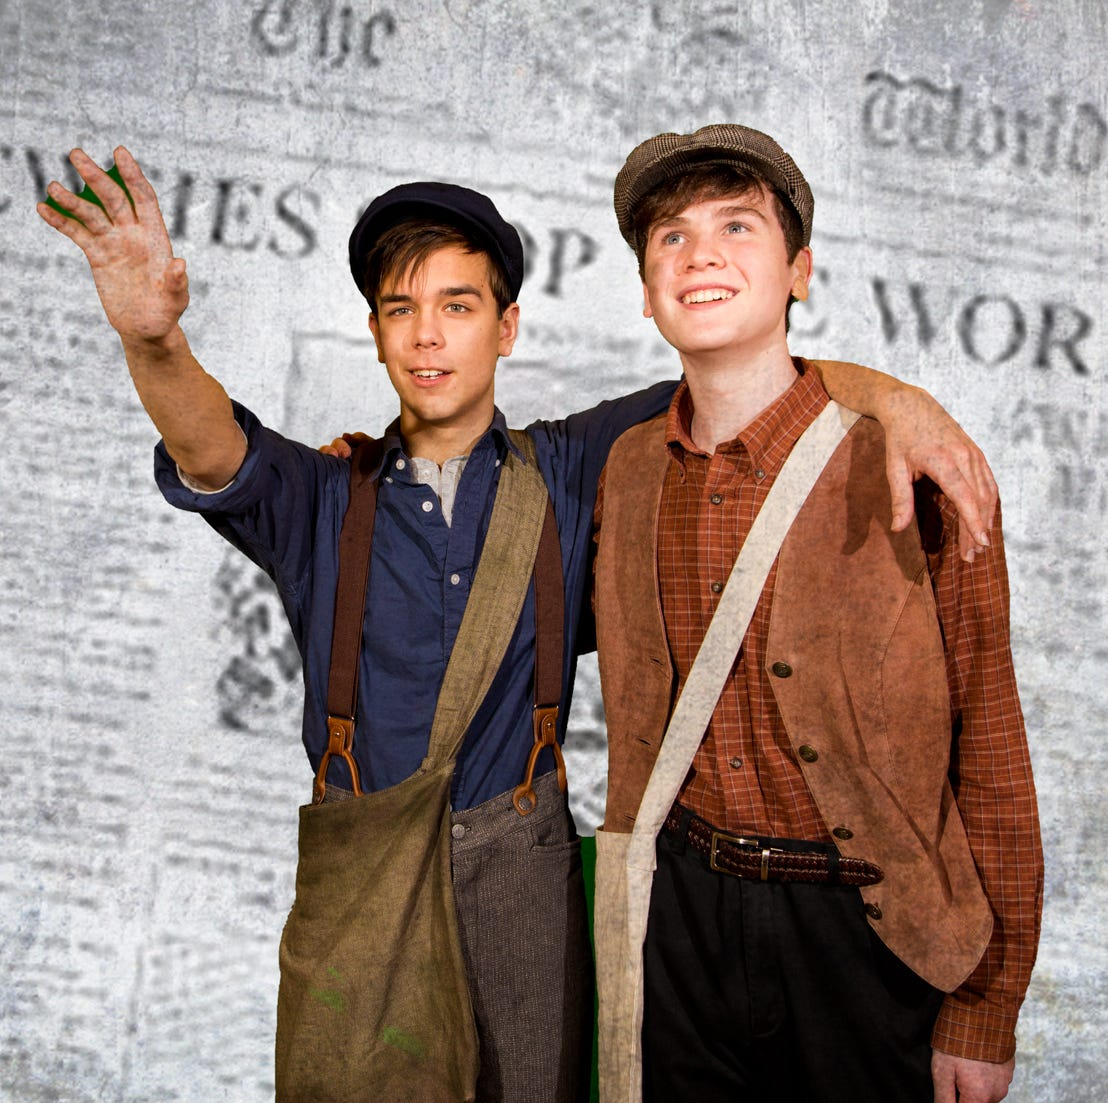 ShowKids Invitational Theatre presents 'Newsies' from Jan. 19 to 27 at Voorhees High School